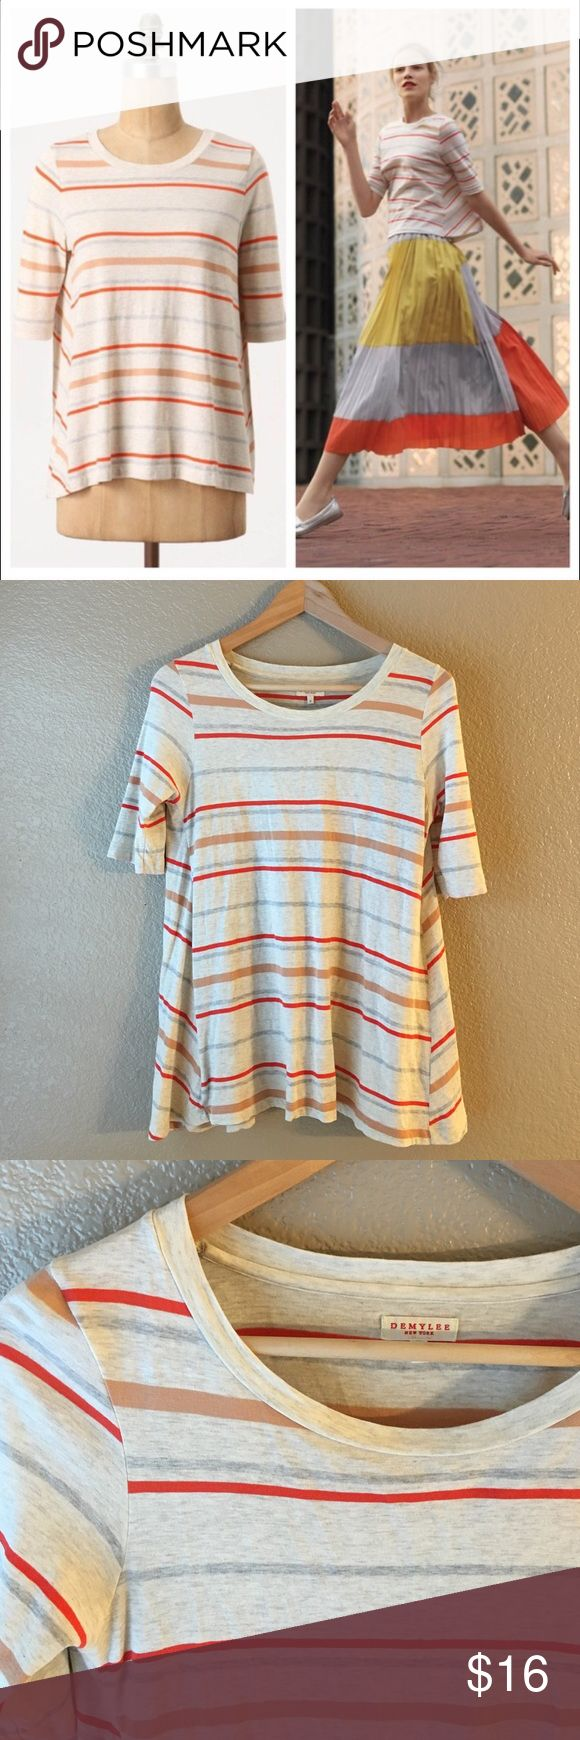 """Anthropologie Demylee Bobbi swing tee Anthropologie. Demylee brand. Size small. Bobbi pullover swing style tee. Creamy heather grey with beige, grey and red-orange stripes. Super soft, stretchable Pima cotton. Half sleeves, scoop neckline. Approx length 26"""", bust stretches up to 22"""" across, hips free. In excellent condition. The cutest swing tee for all seasons! Anthropologie Tops"""